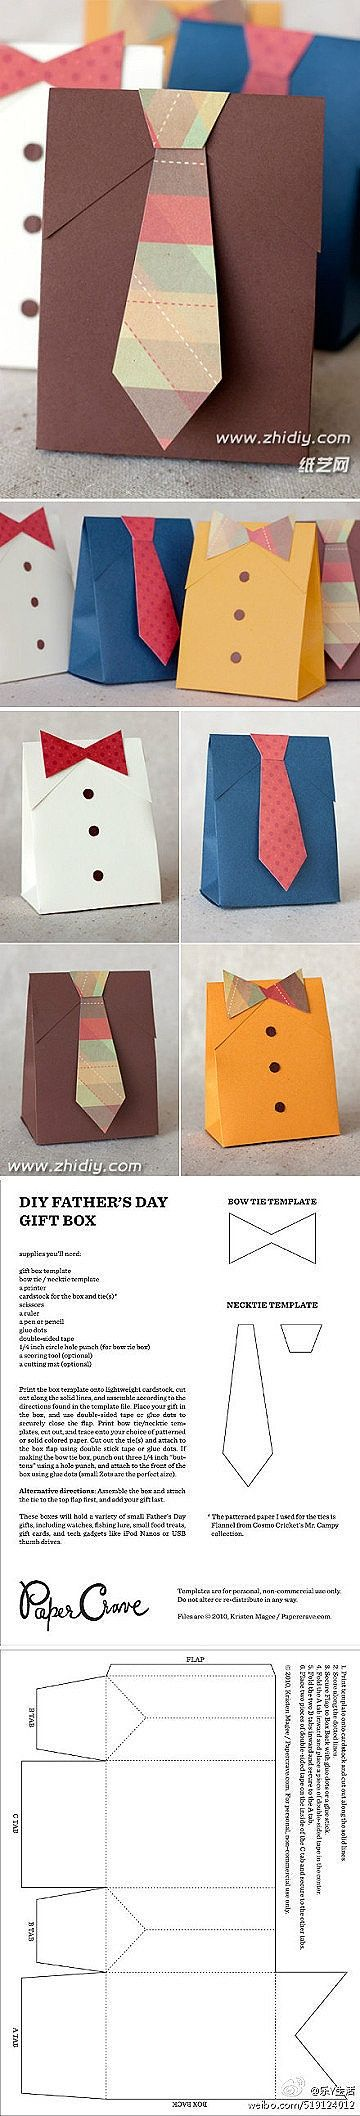 Father's day shirt and tie treat box - bjl